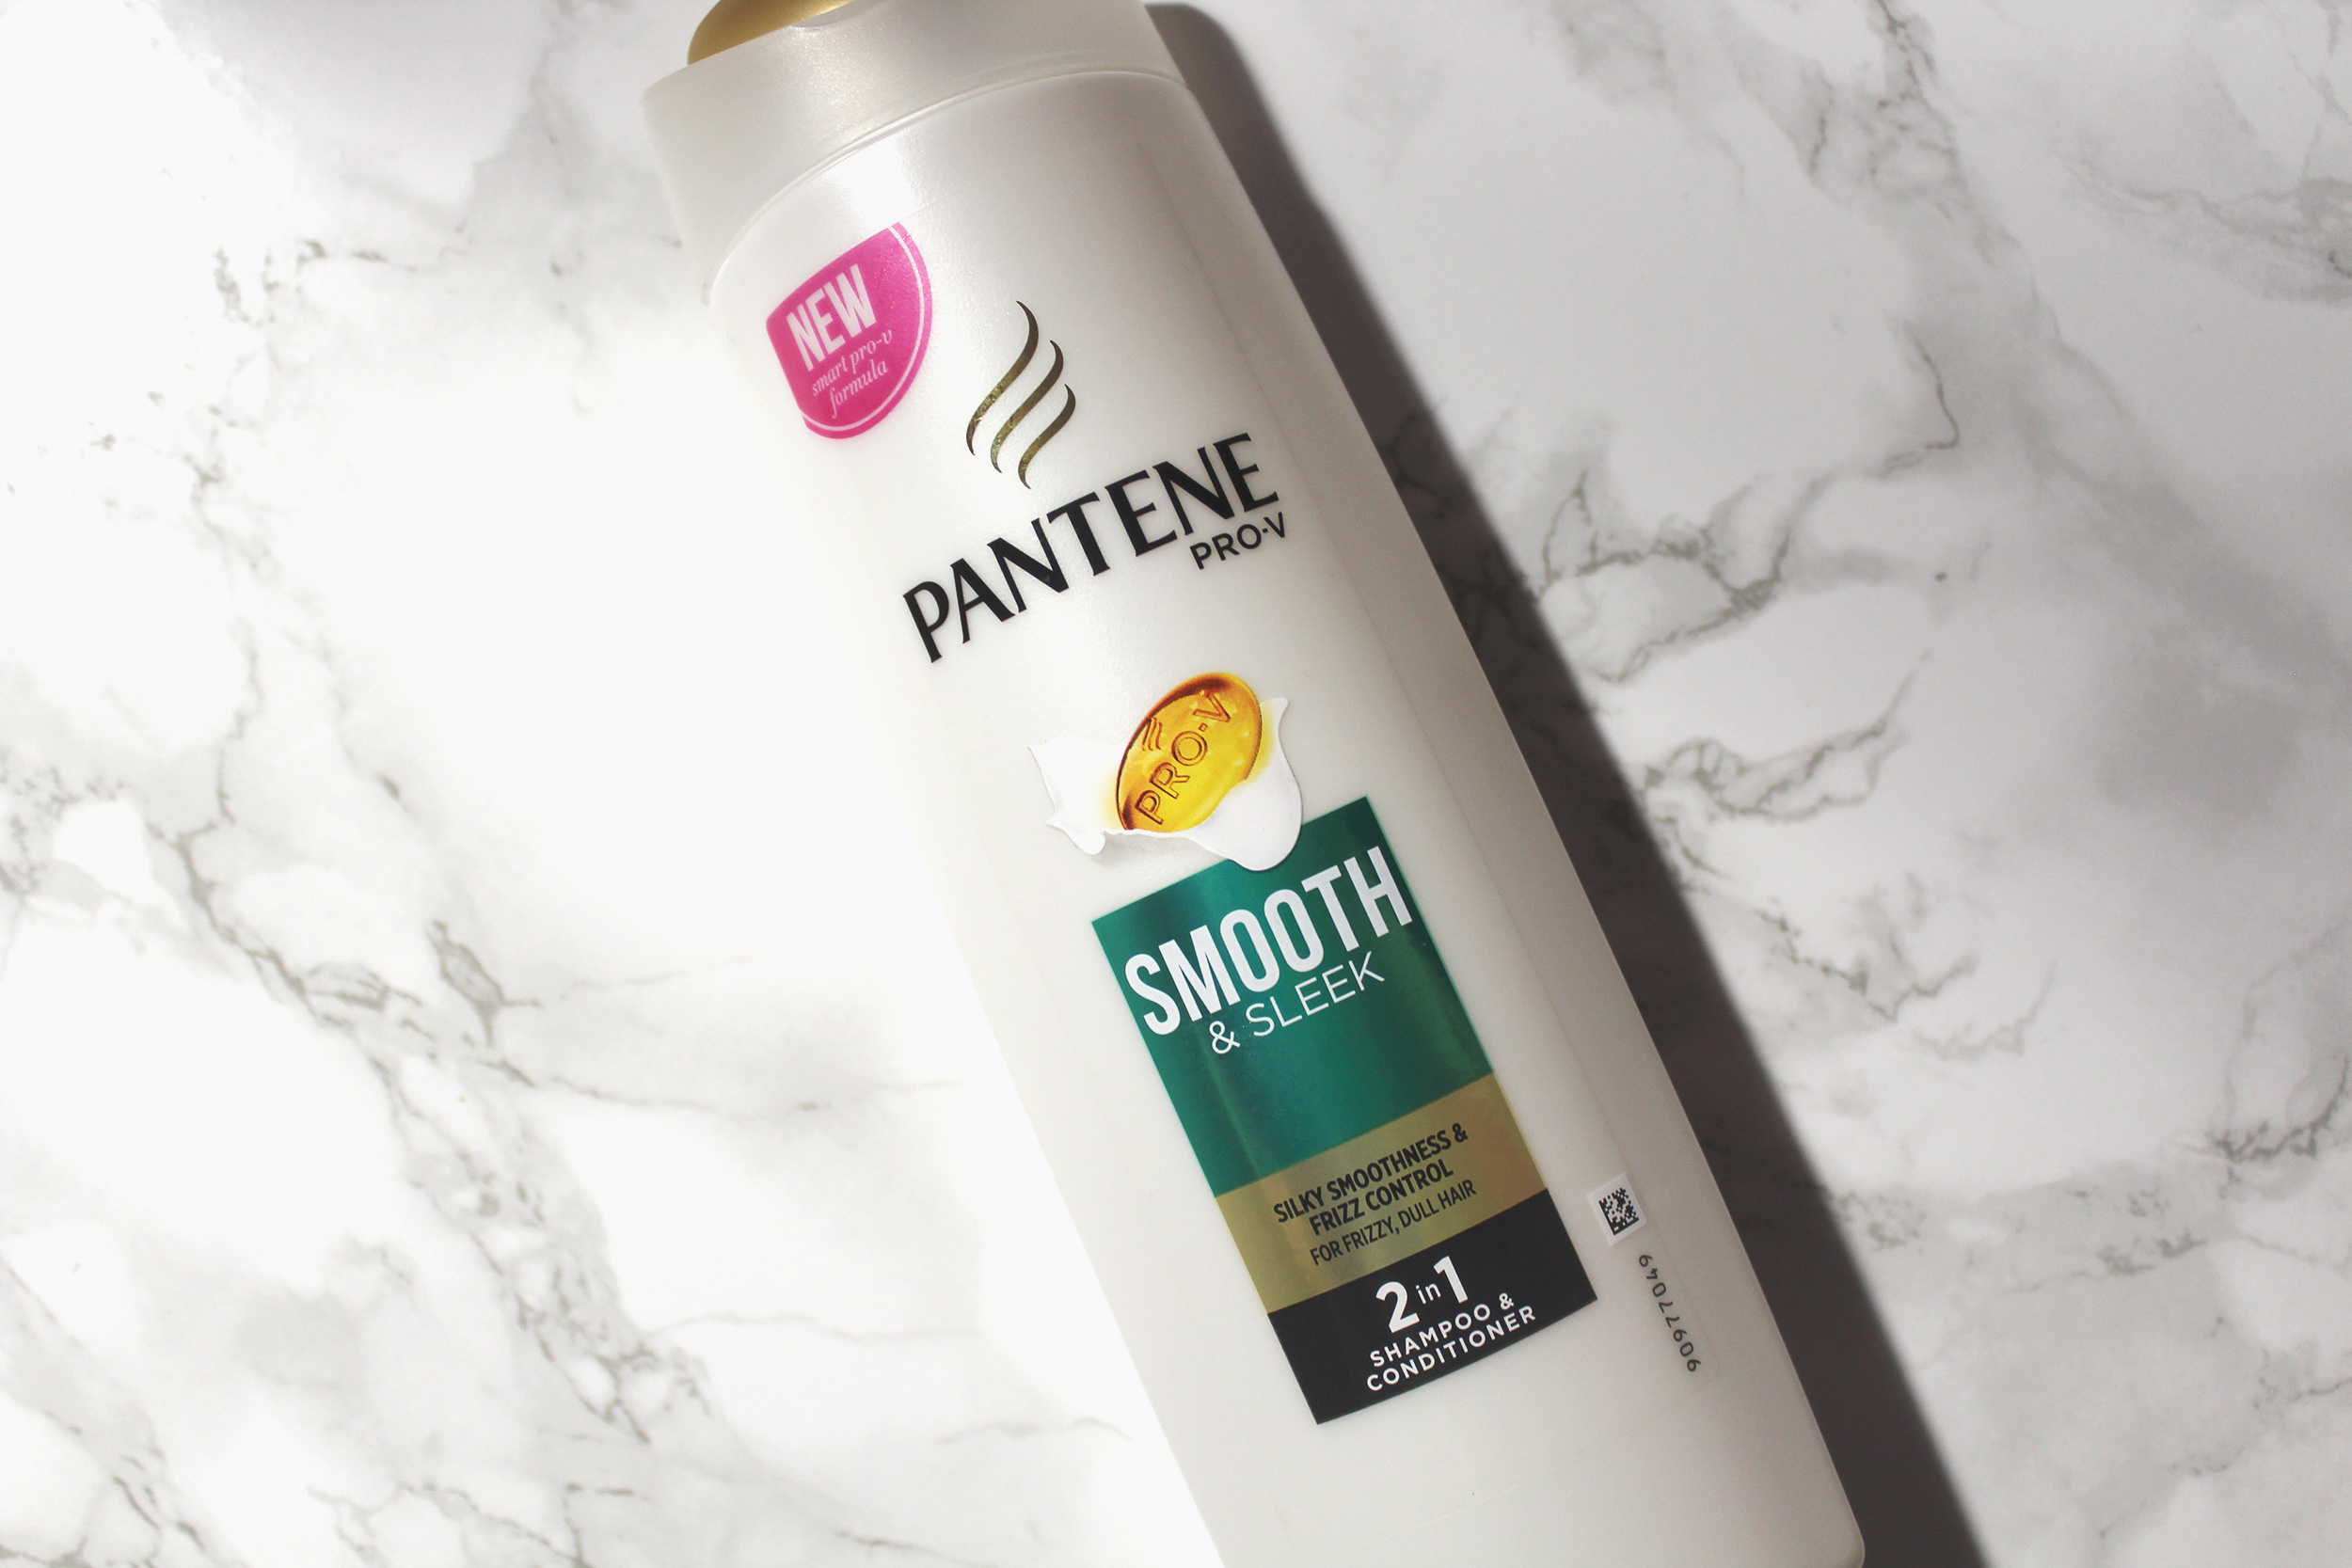 Pantene Smooth & Sleek 2 in 1 Shampoo and Conditioner